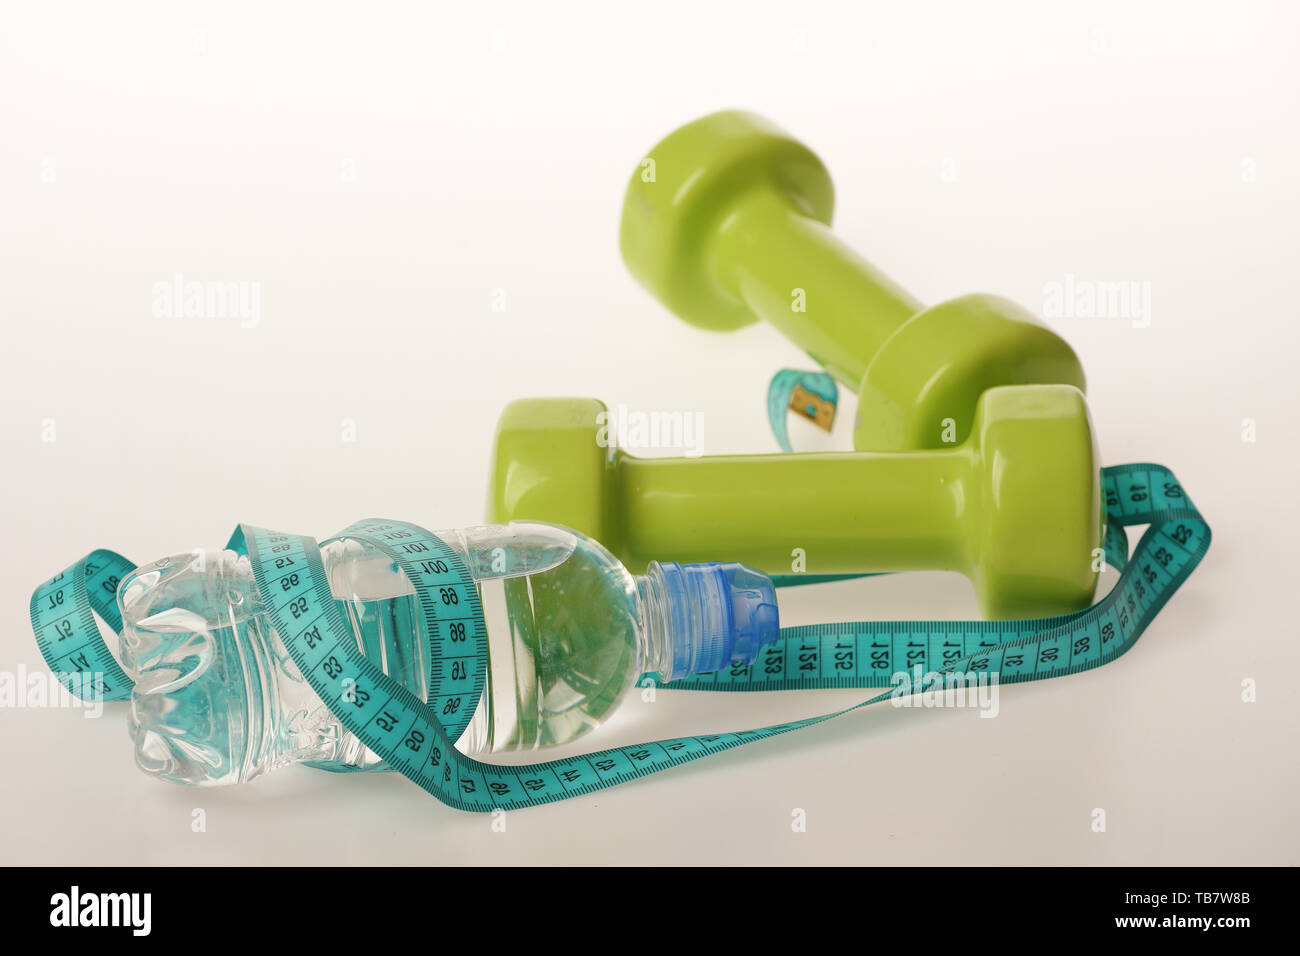 Water bottle tied with cyan blue measure tape by green dumbbells on white background. Athletics and weightloss concept. Refreshment and diet equipment. Bottle wrapped with tape by lightweight barbells - Stock Image